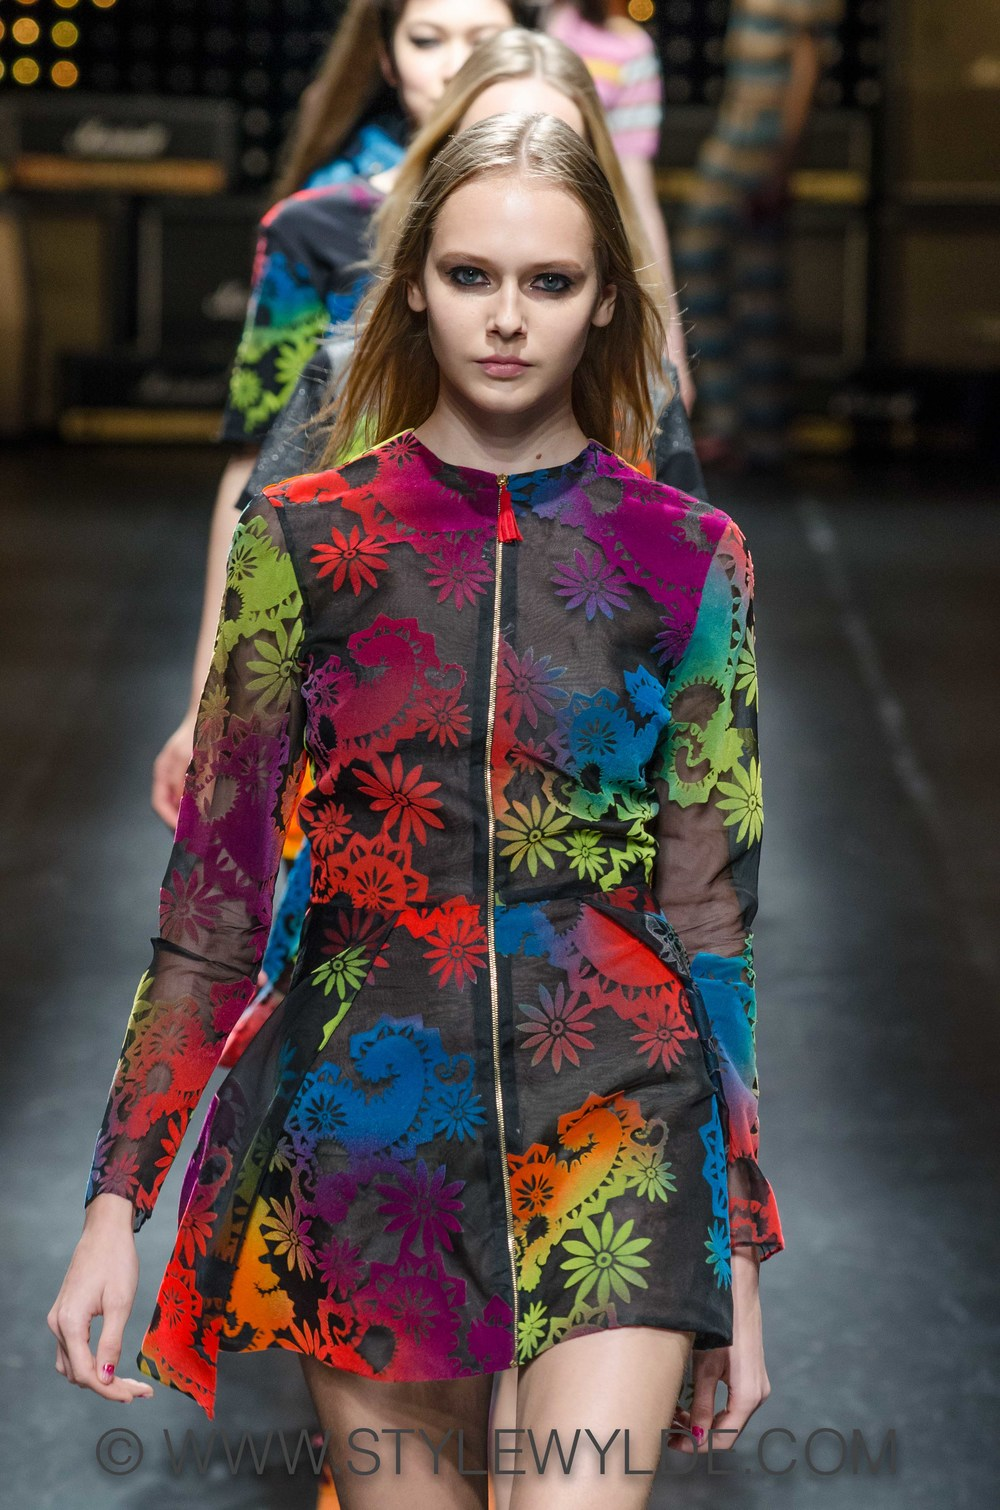 stylewylde_HouseofHolland_SS15 (68 of 68).jpg